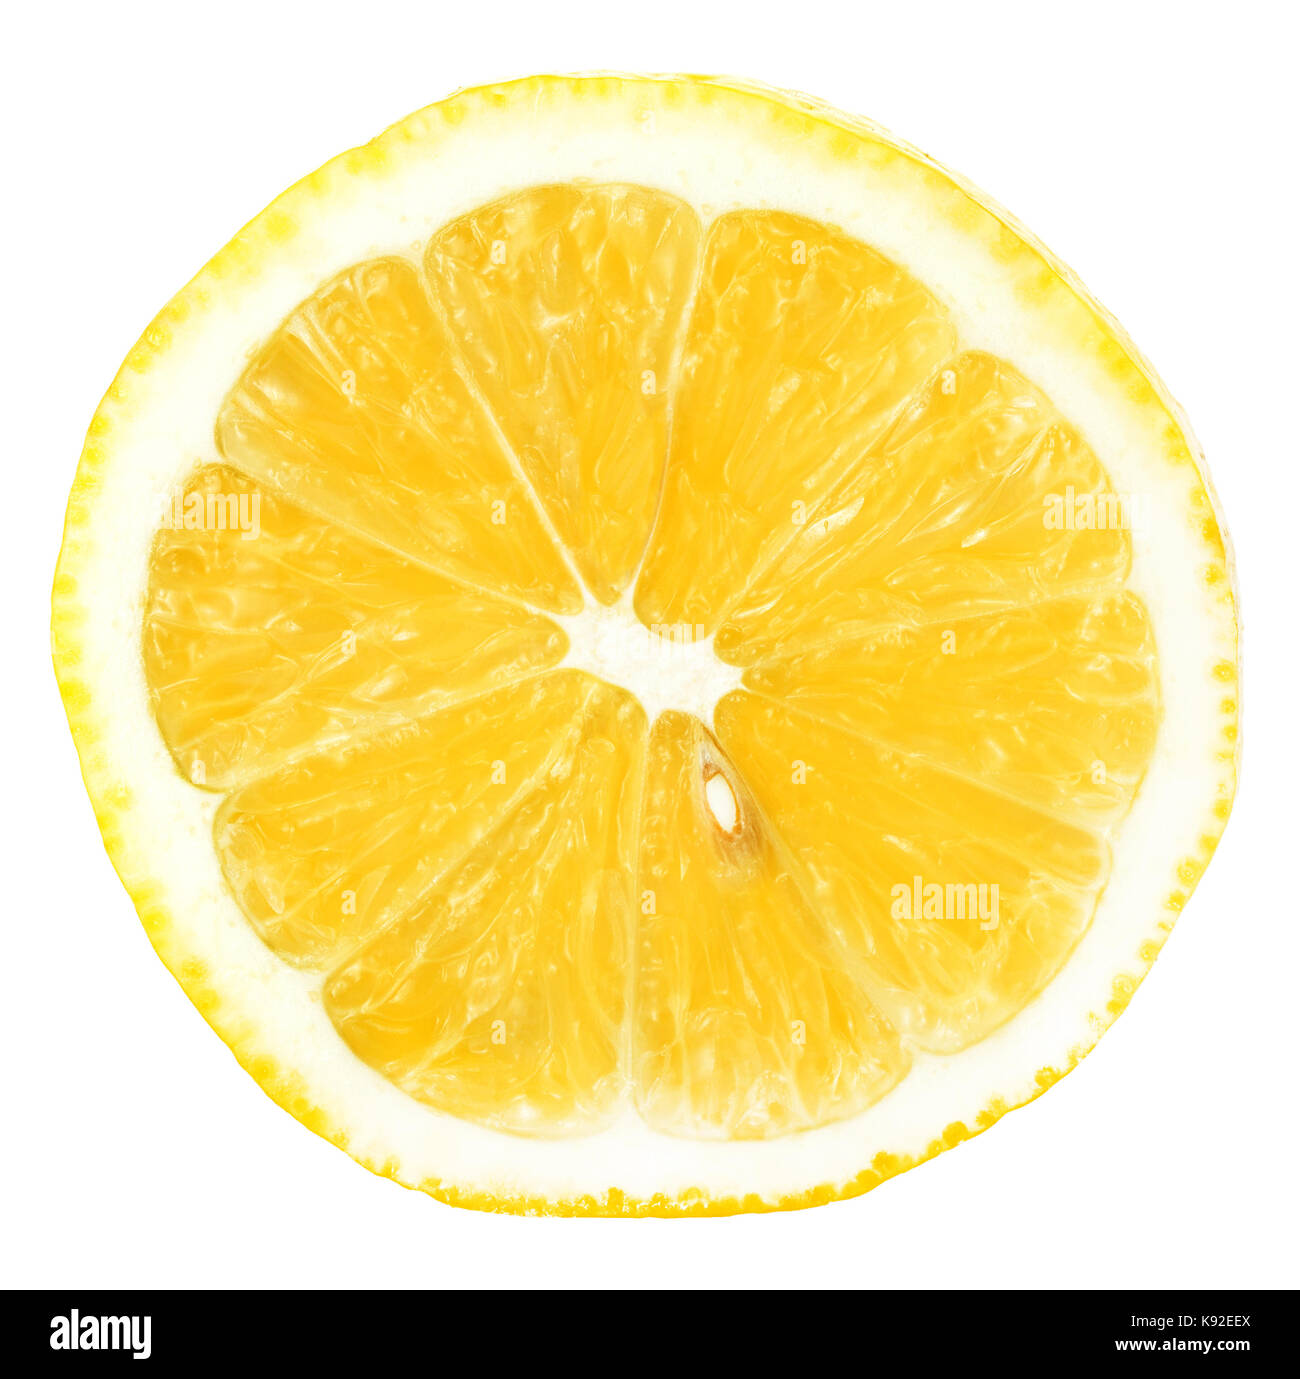 Juicy yellow slice of lemon isolatedon a white background - Stock Image